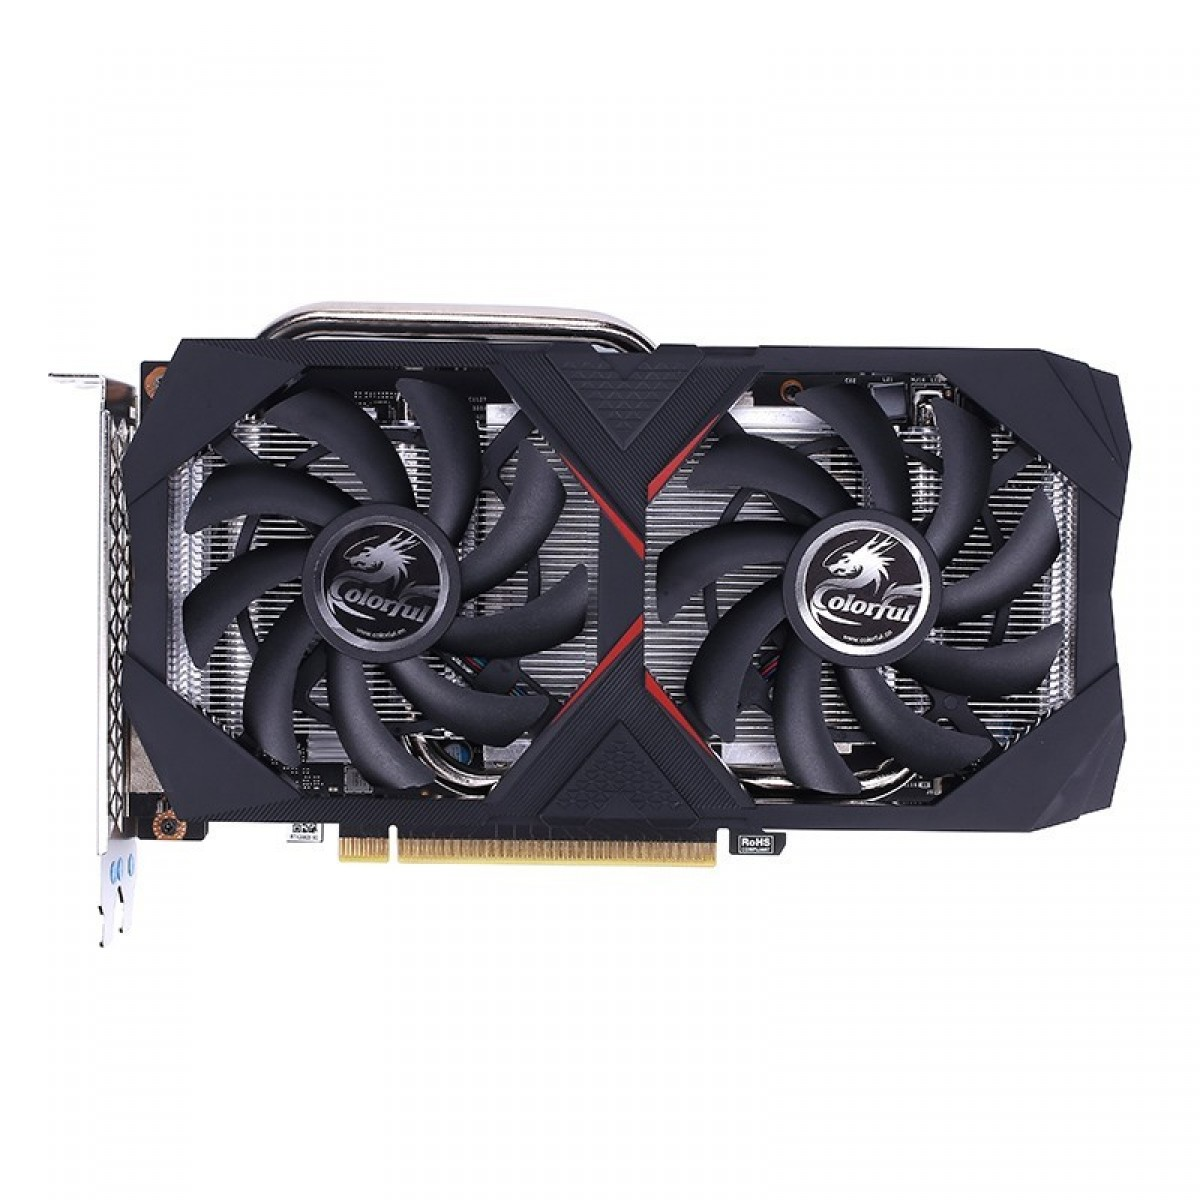 Placa de Vídeo Colorful GeForce RTX 2060 SUPER 8G-V, Dual, 8GB GDDR6, 256Bit